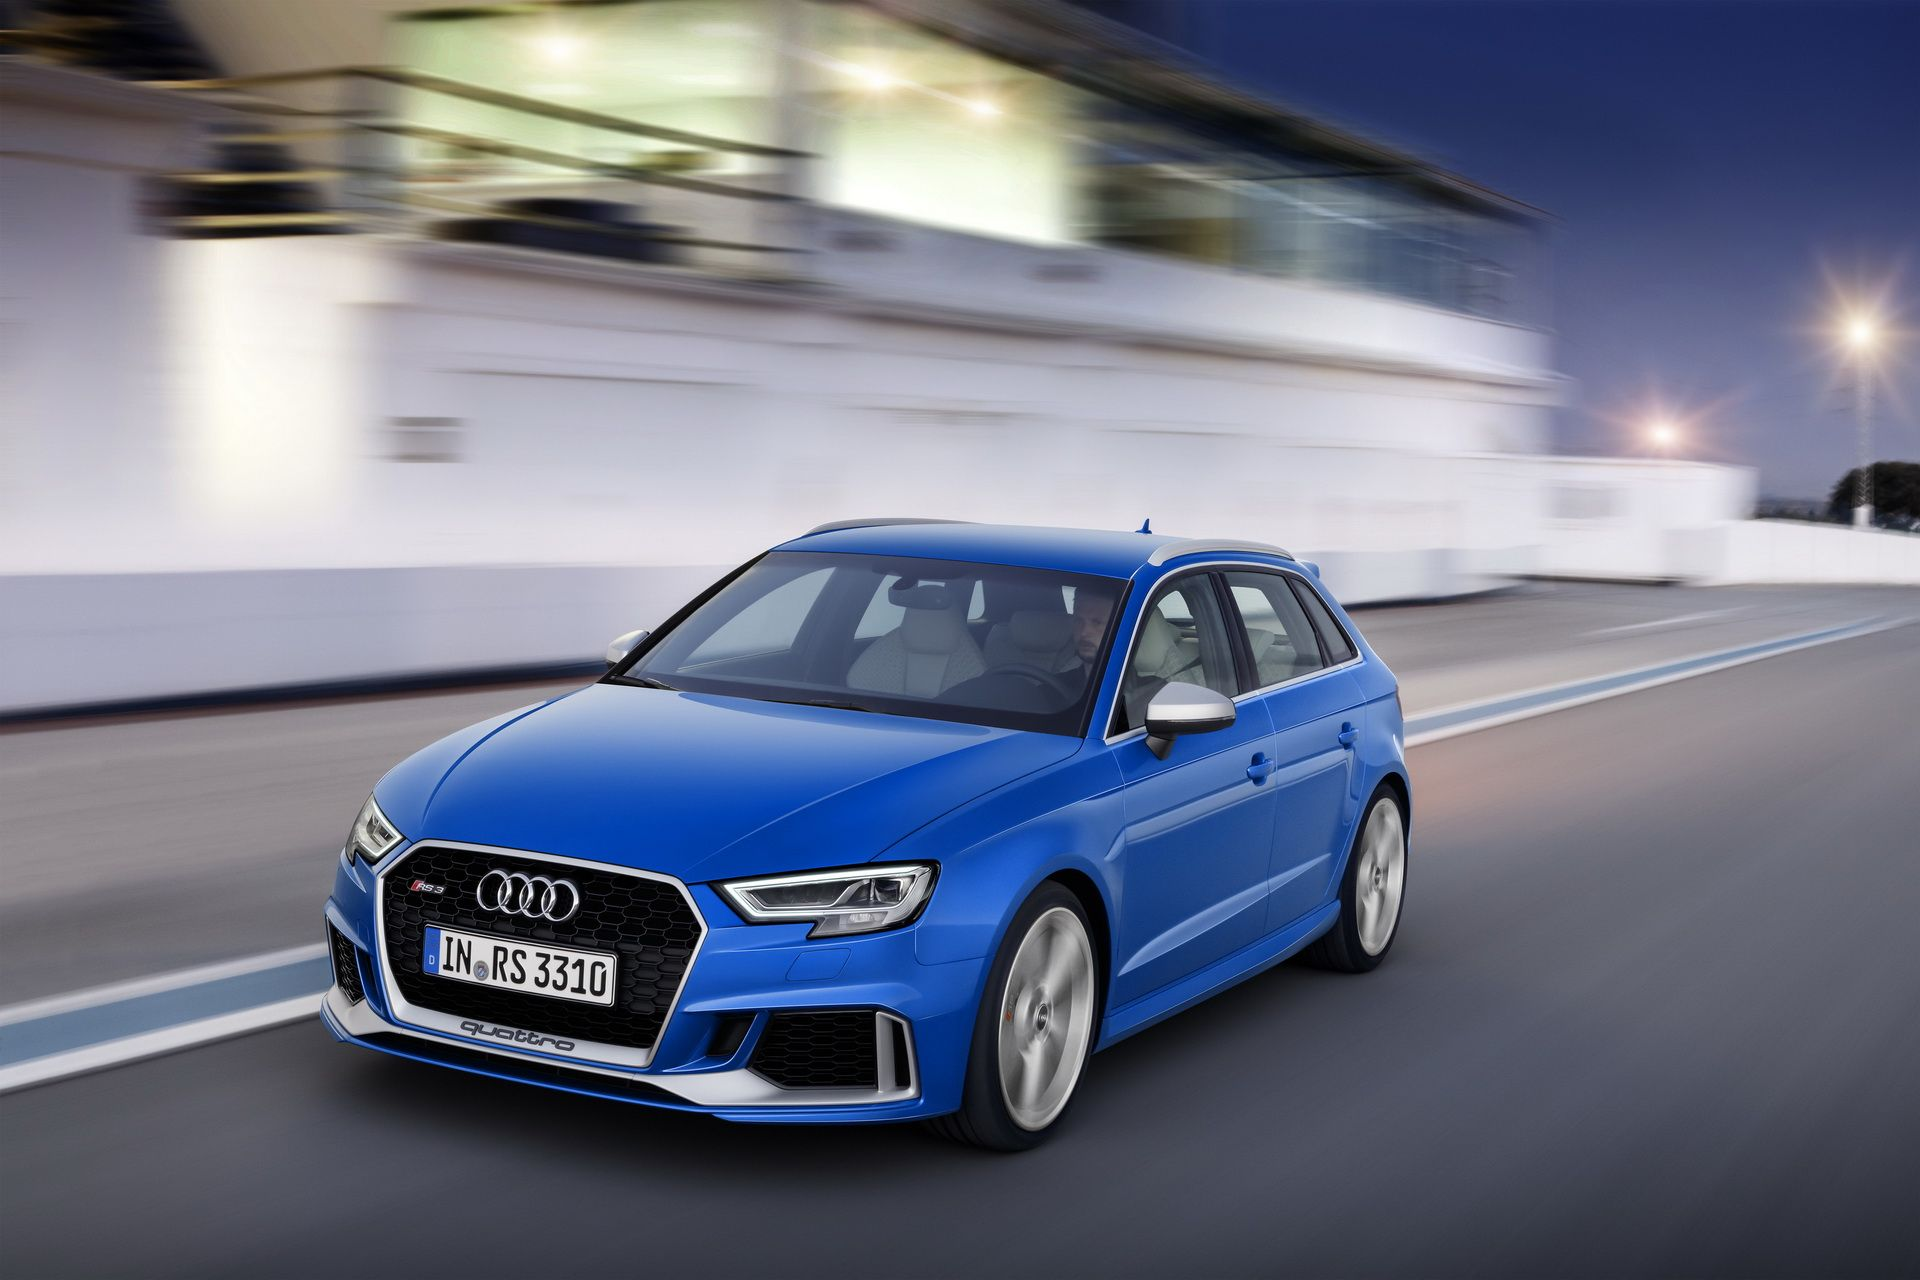 The New Audi Rs3 Sportback With 400ps Even More Powerful And Well